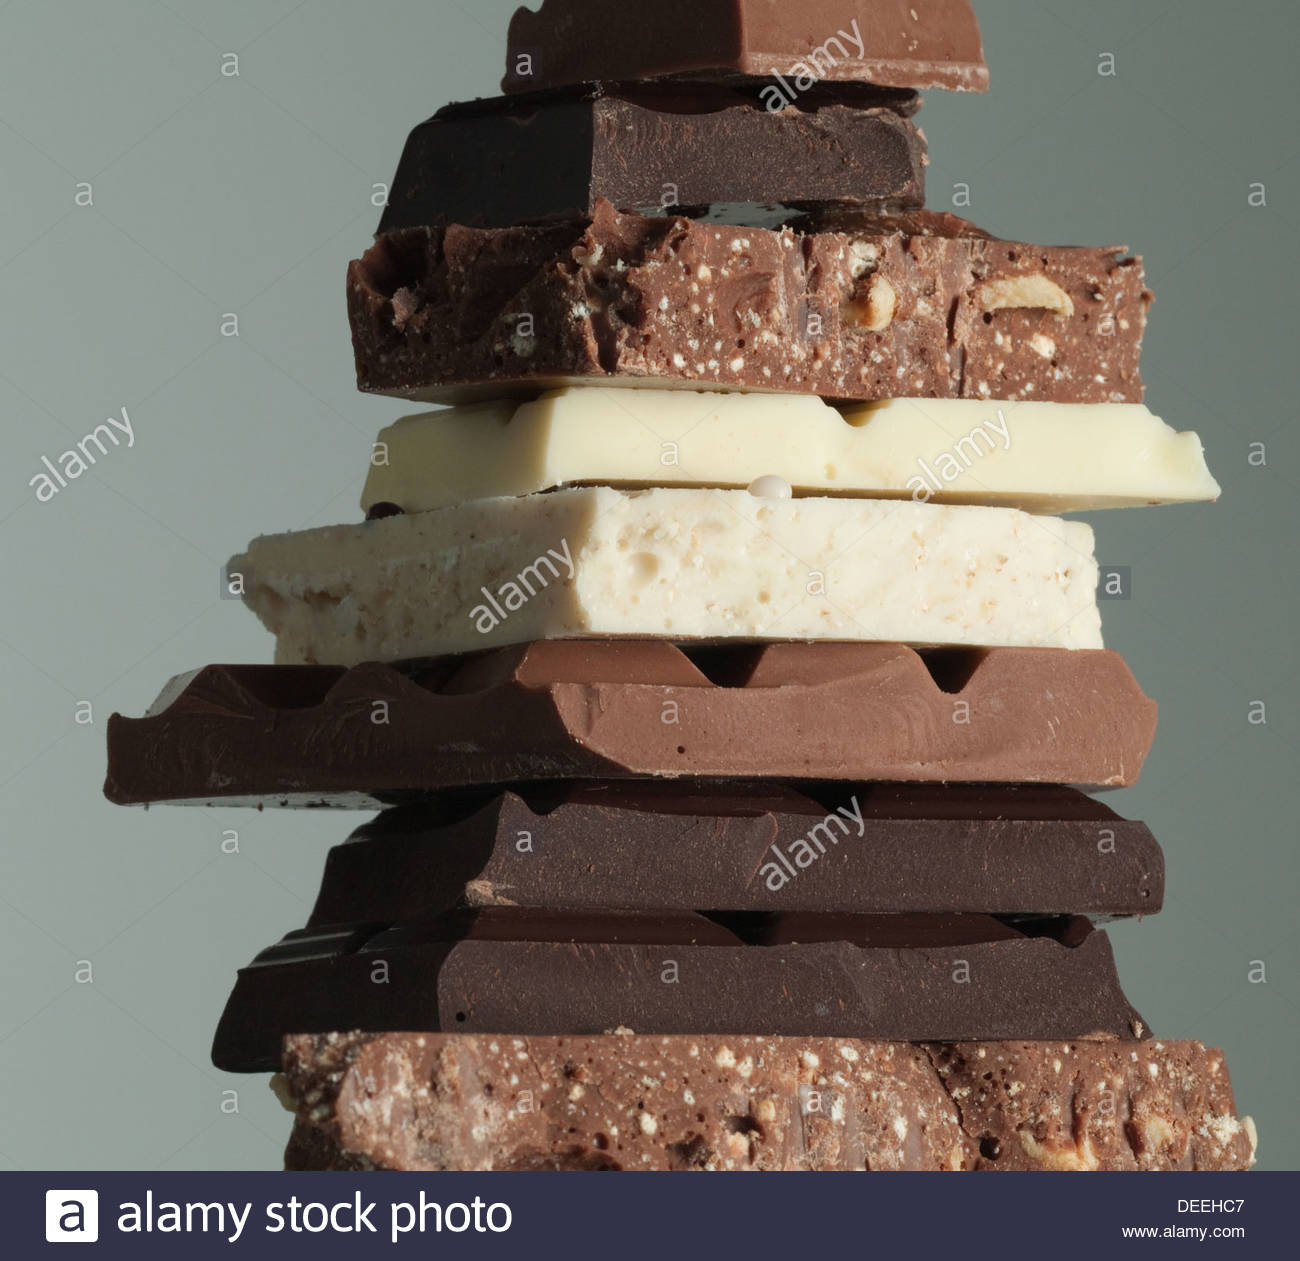 Pile de barres de chocolat Photo Stock